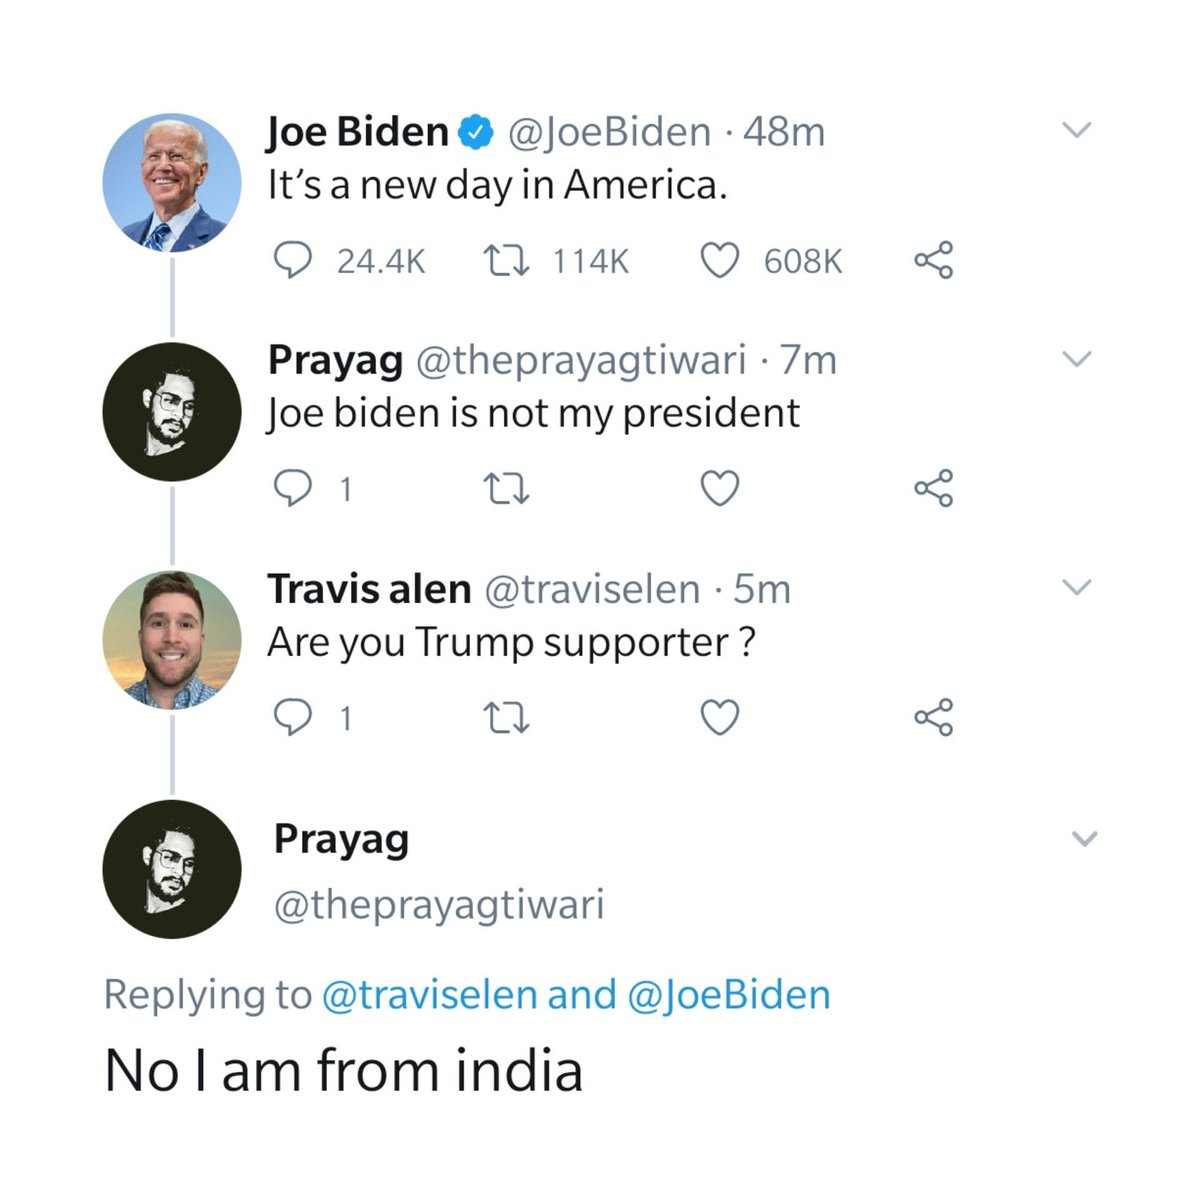 This made me laugh. Just read it. It doesn't end how you think. No one gets bashed. No one gets ridiculed. It's good to have some comic relief for a change. 😀 #trump #biden